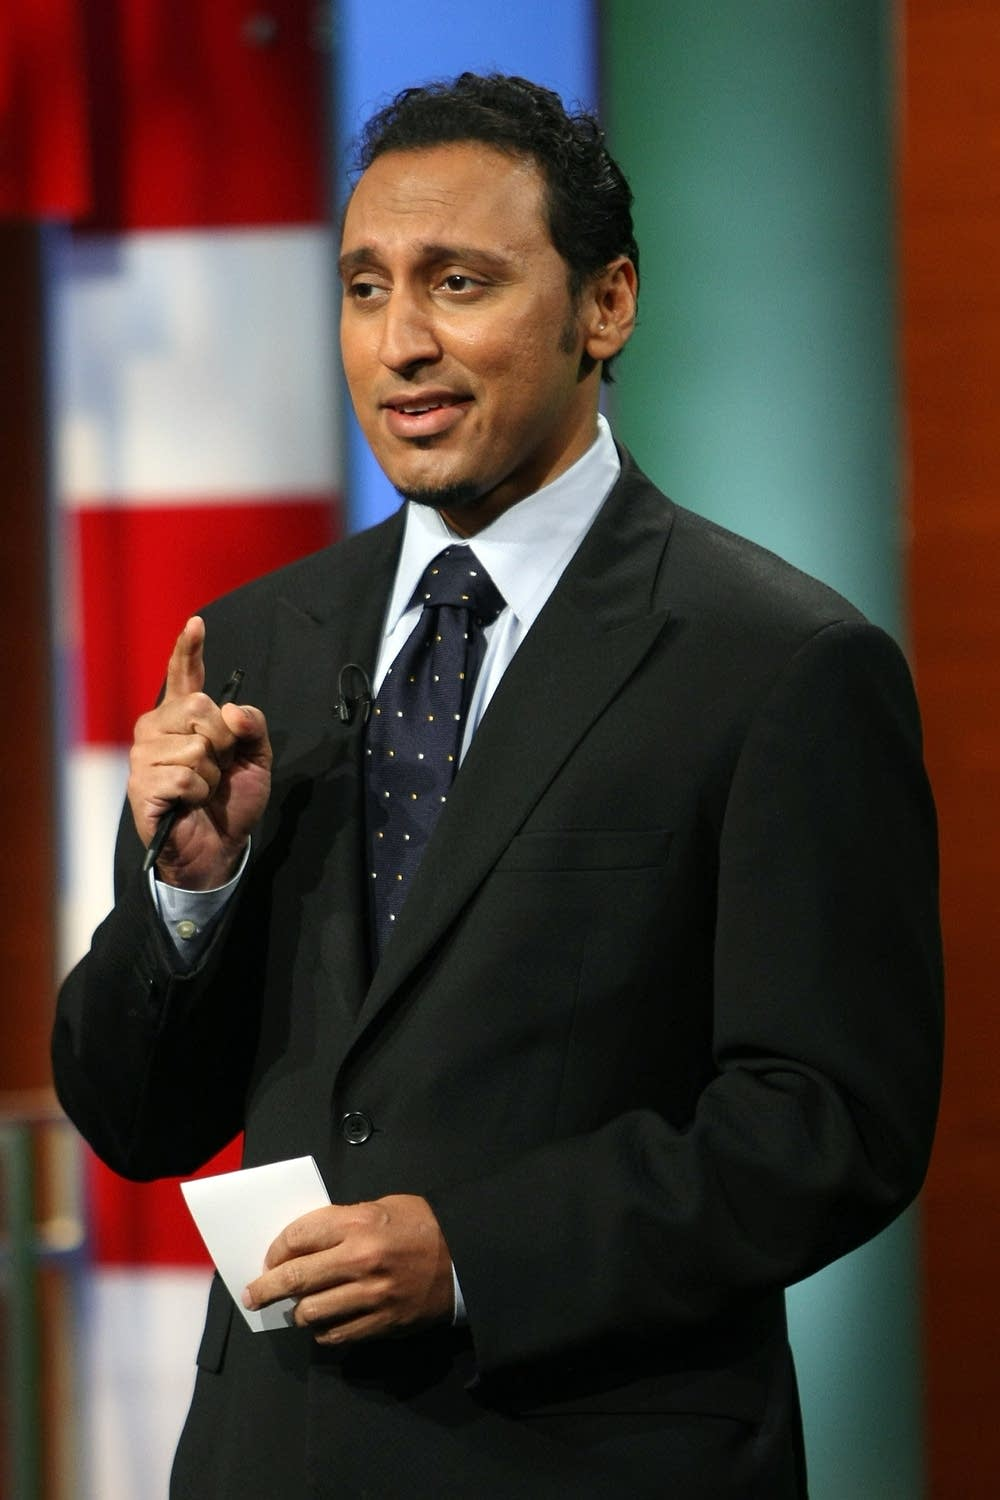 The Daily Show's Aasif Mandvi